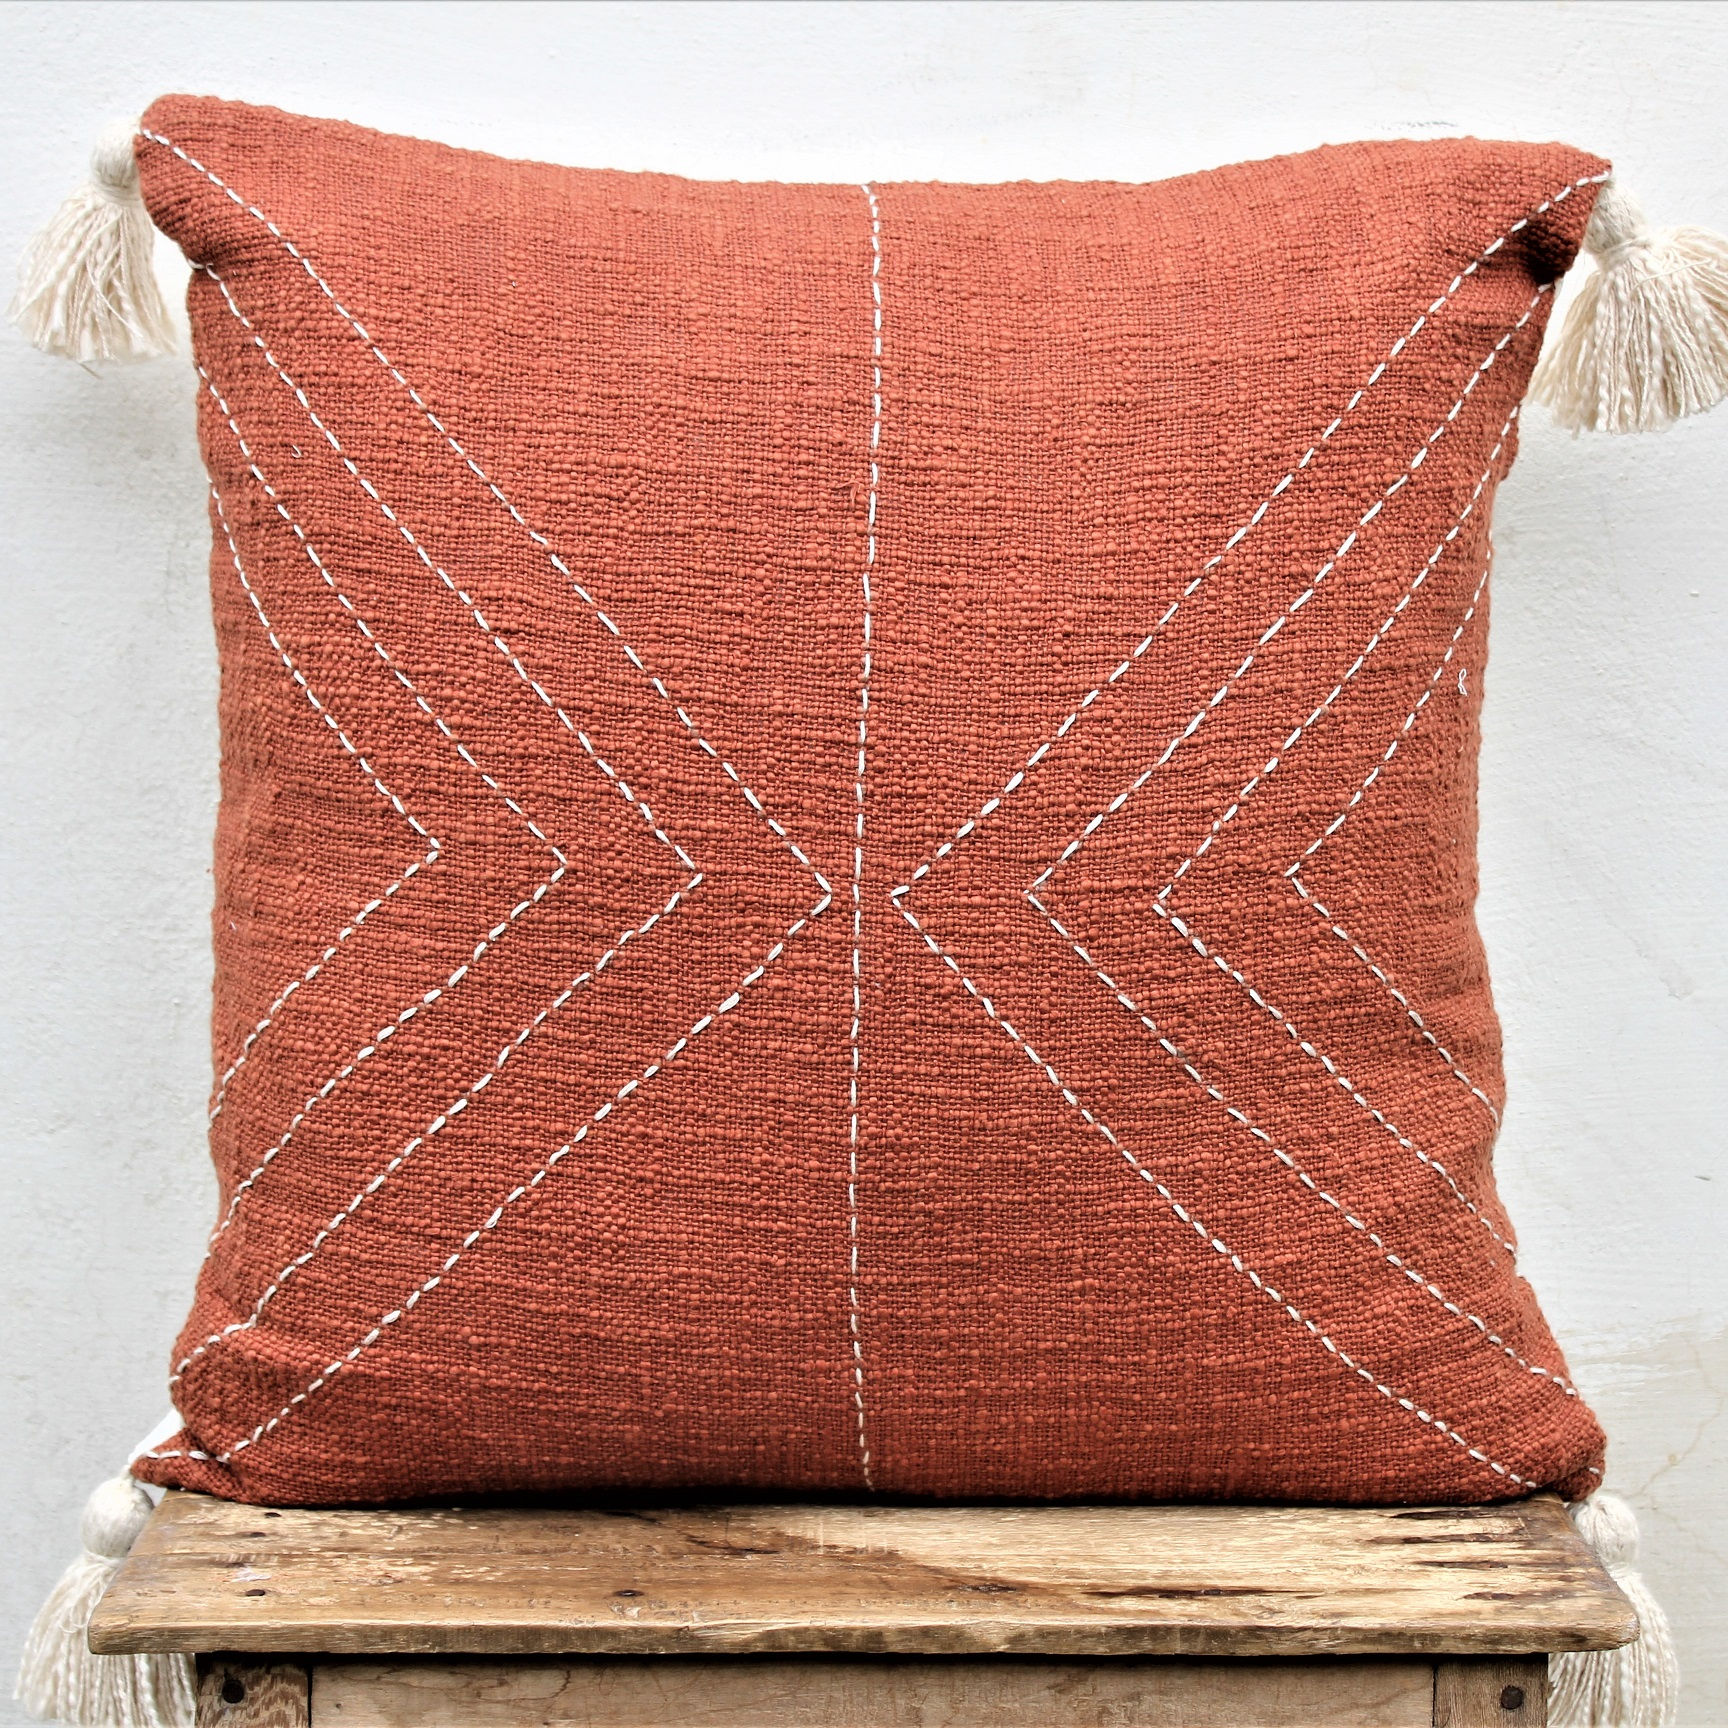 Decorative Handwoven 20 X 20 Cotton Pillow Cover with tassels Living room Sofa Couch Cushion Cover Modern Pillow Cover